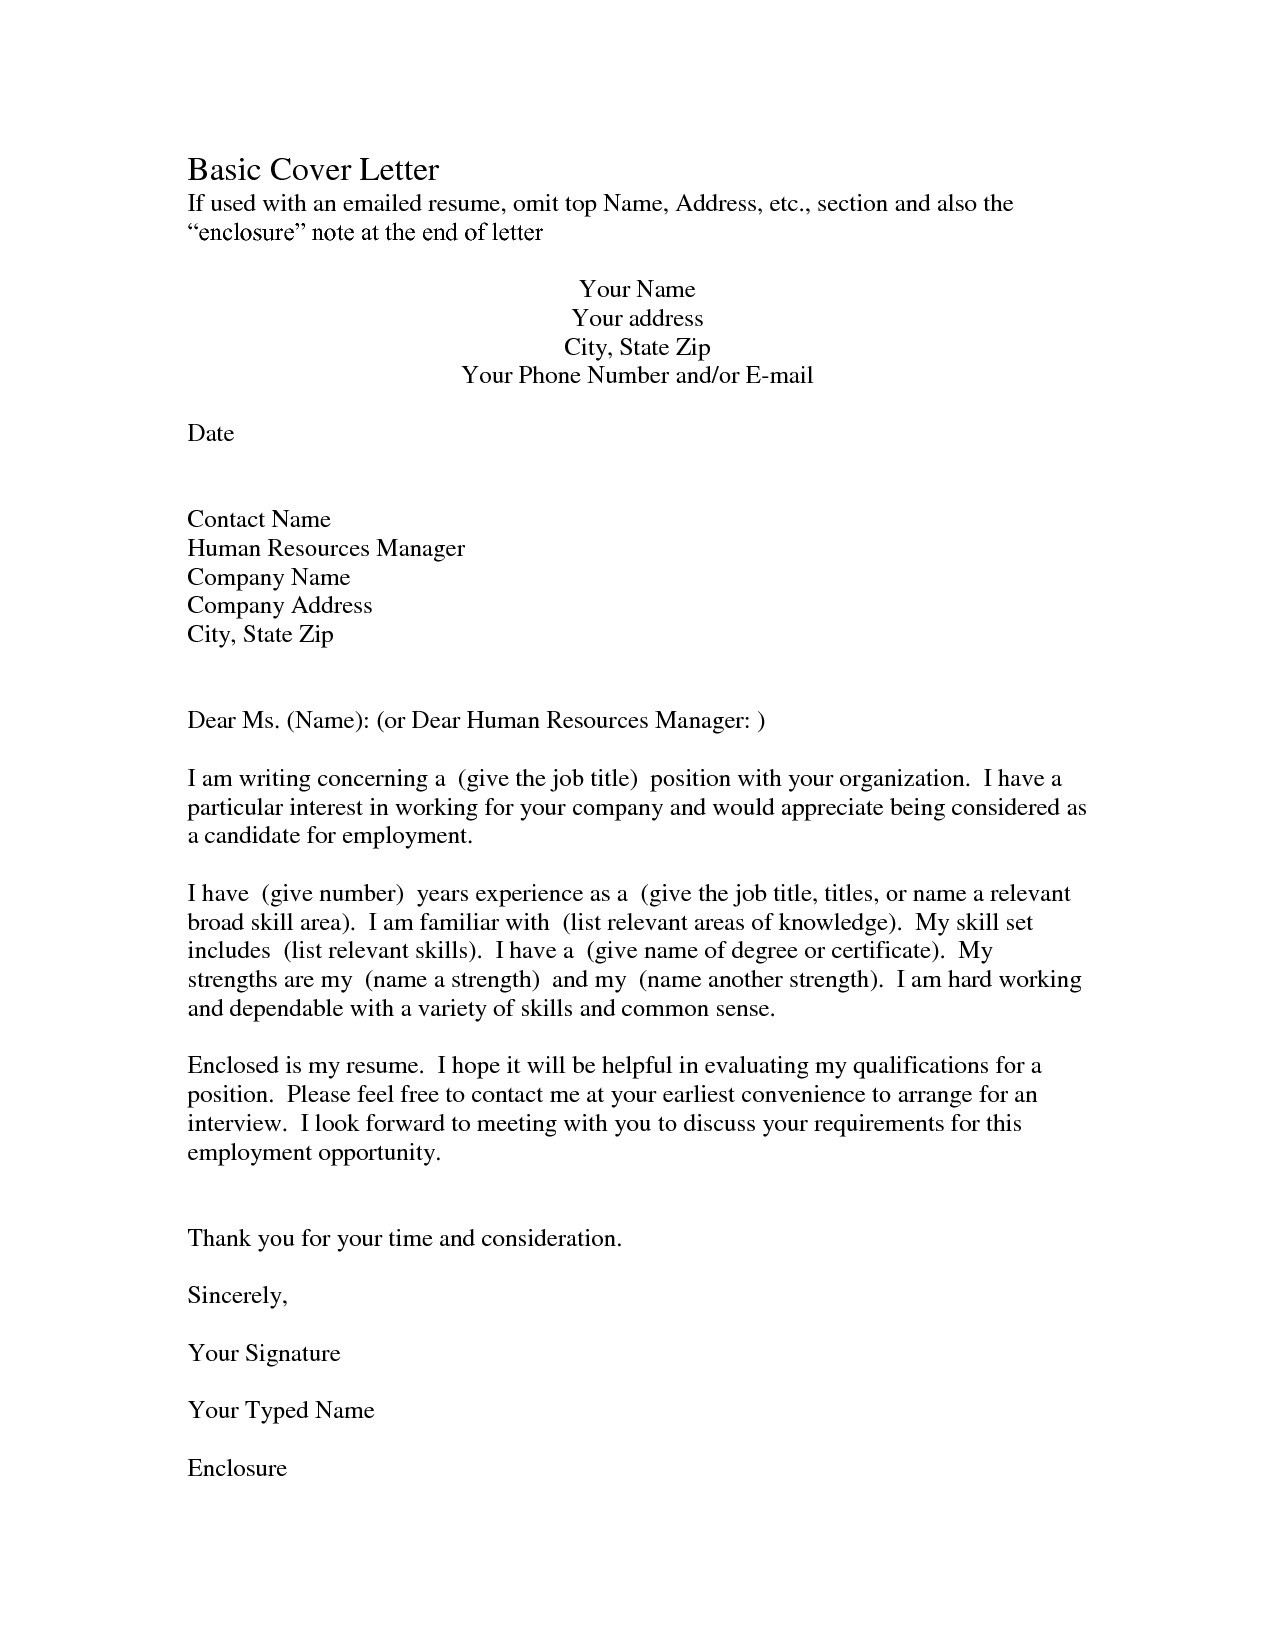 Cover Letter Template for Human Resources - Free Resume Cover Letter format S